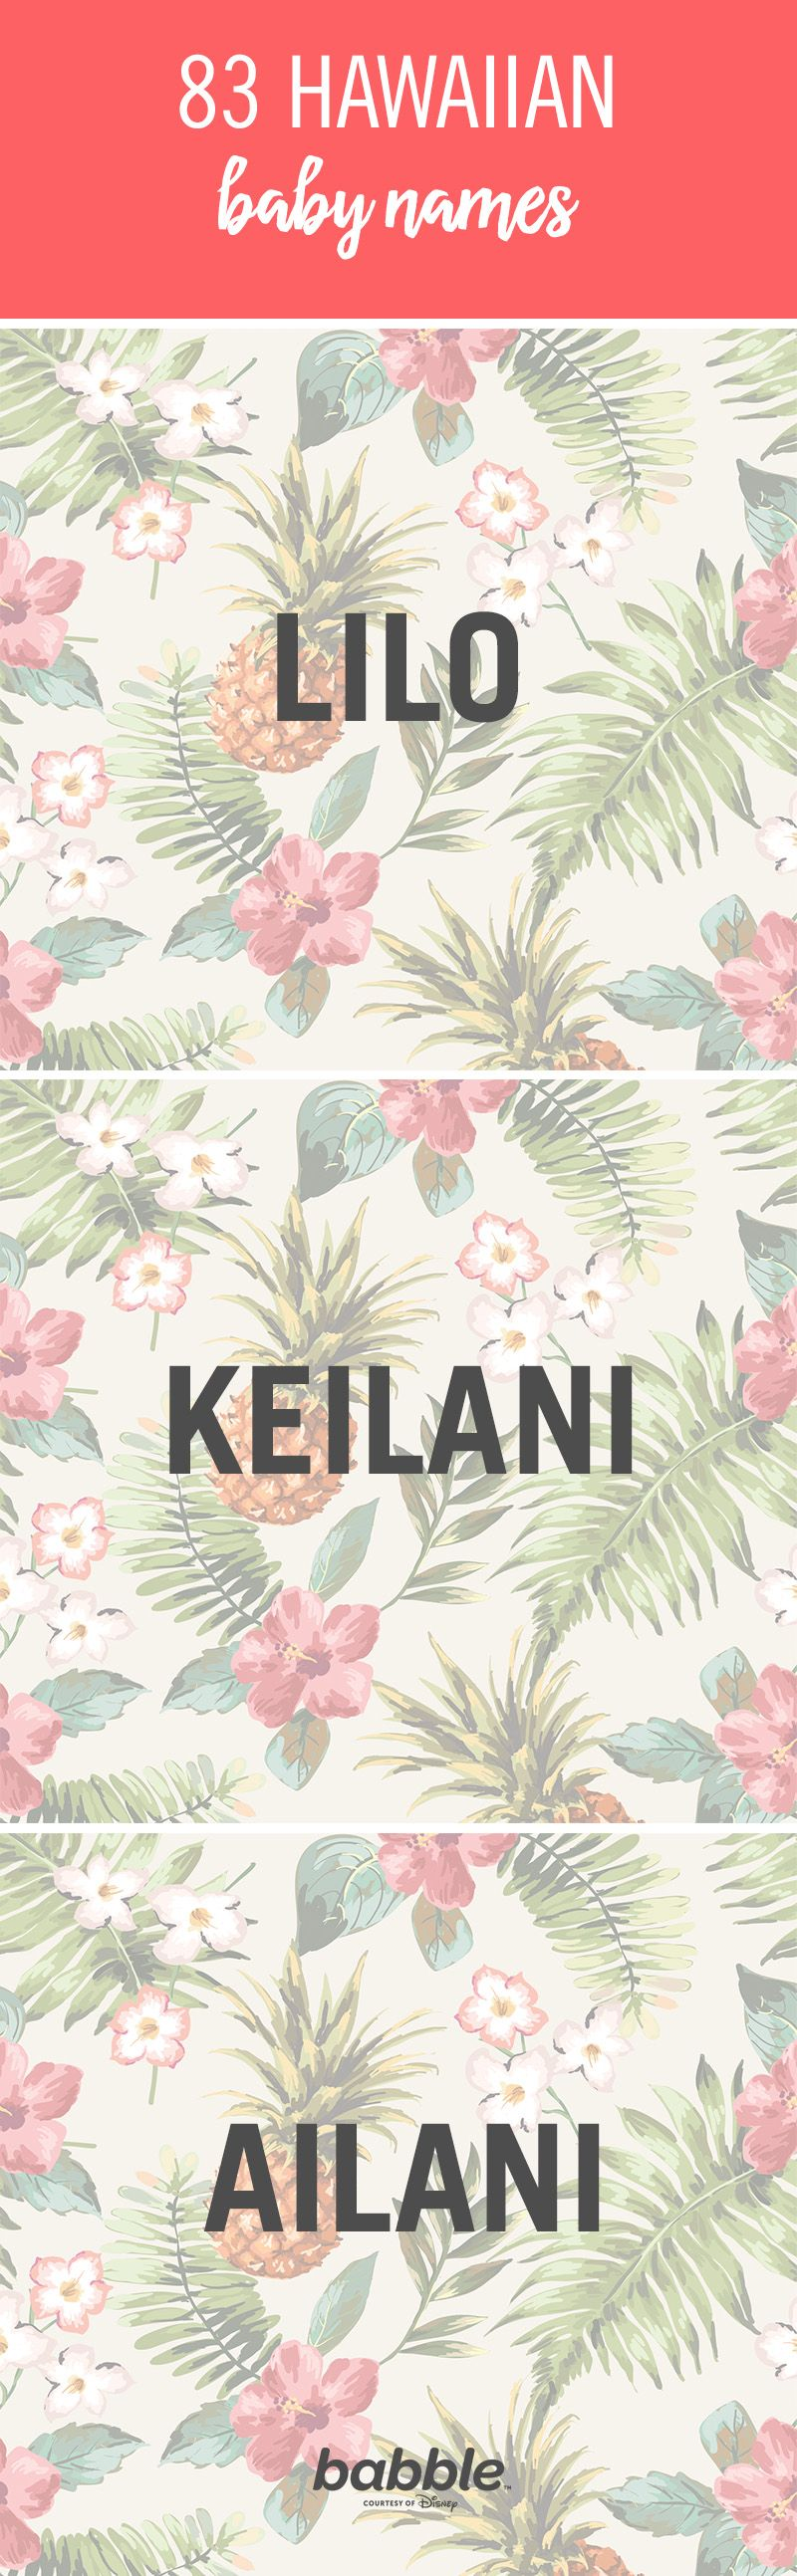 When it comes to naming your baby, it can sometimes be a difficult decision, as there are so many names to choose from. Hawaiian baby names can be great options. They tend to be some of the most beautiful and exotic names out there. From Lilo and Ailani, there are many great options to choose from. Click to browse through a list of Hawaiian baby names.